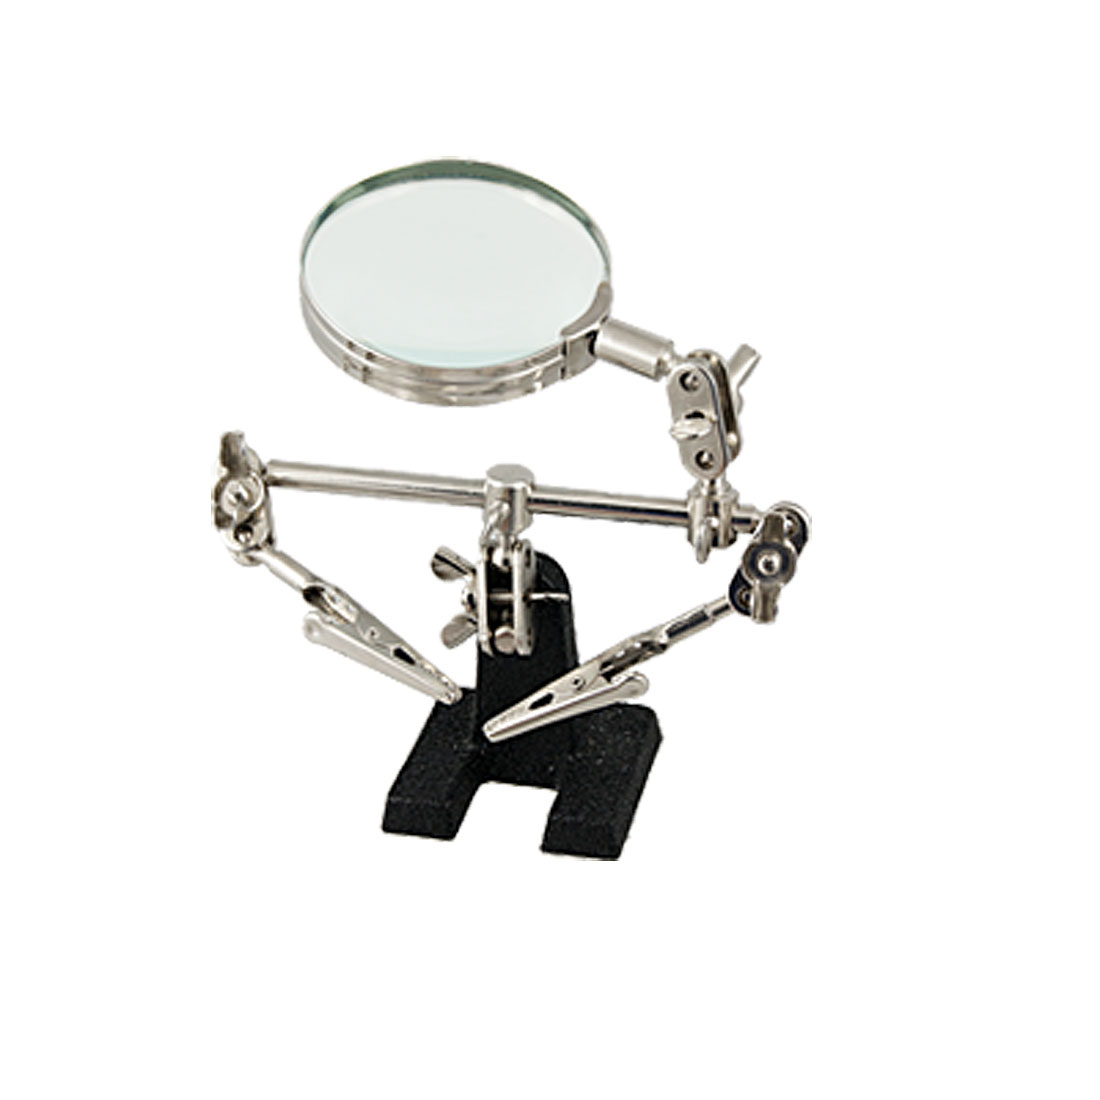 "Rotary 2X 2.5"" Lens Magnifying Glass w Alligator Clips"